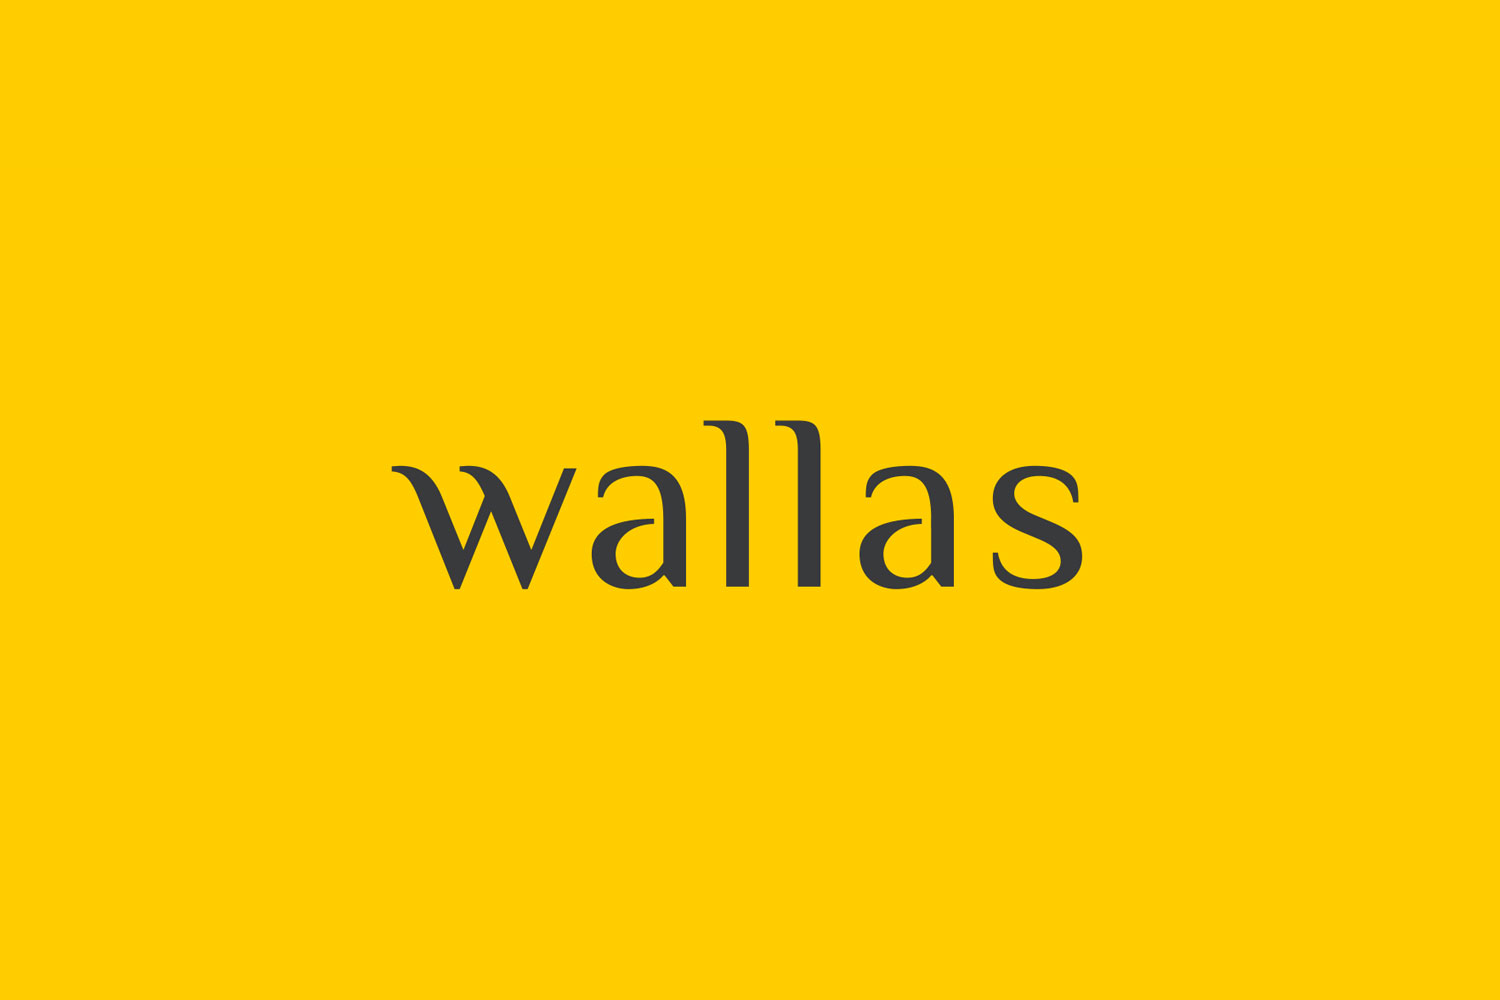 Branding identity design for Wallas Inc, an integrated agency in SG - Identity word mark.